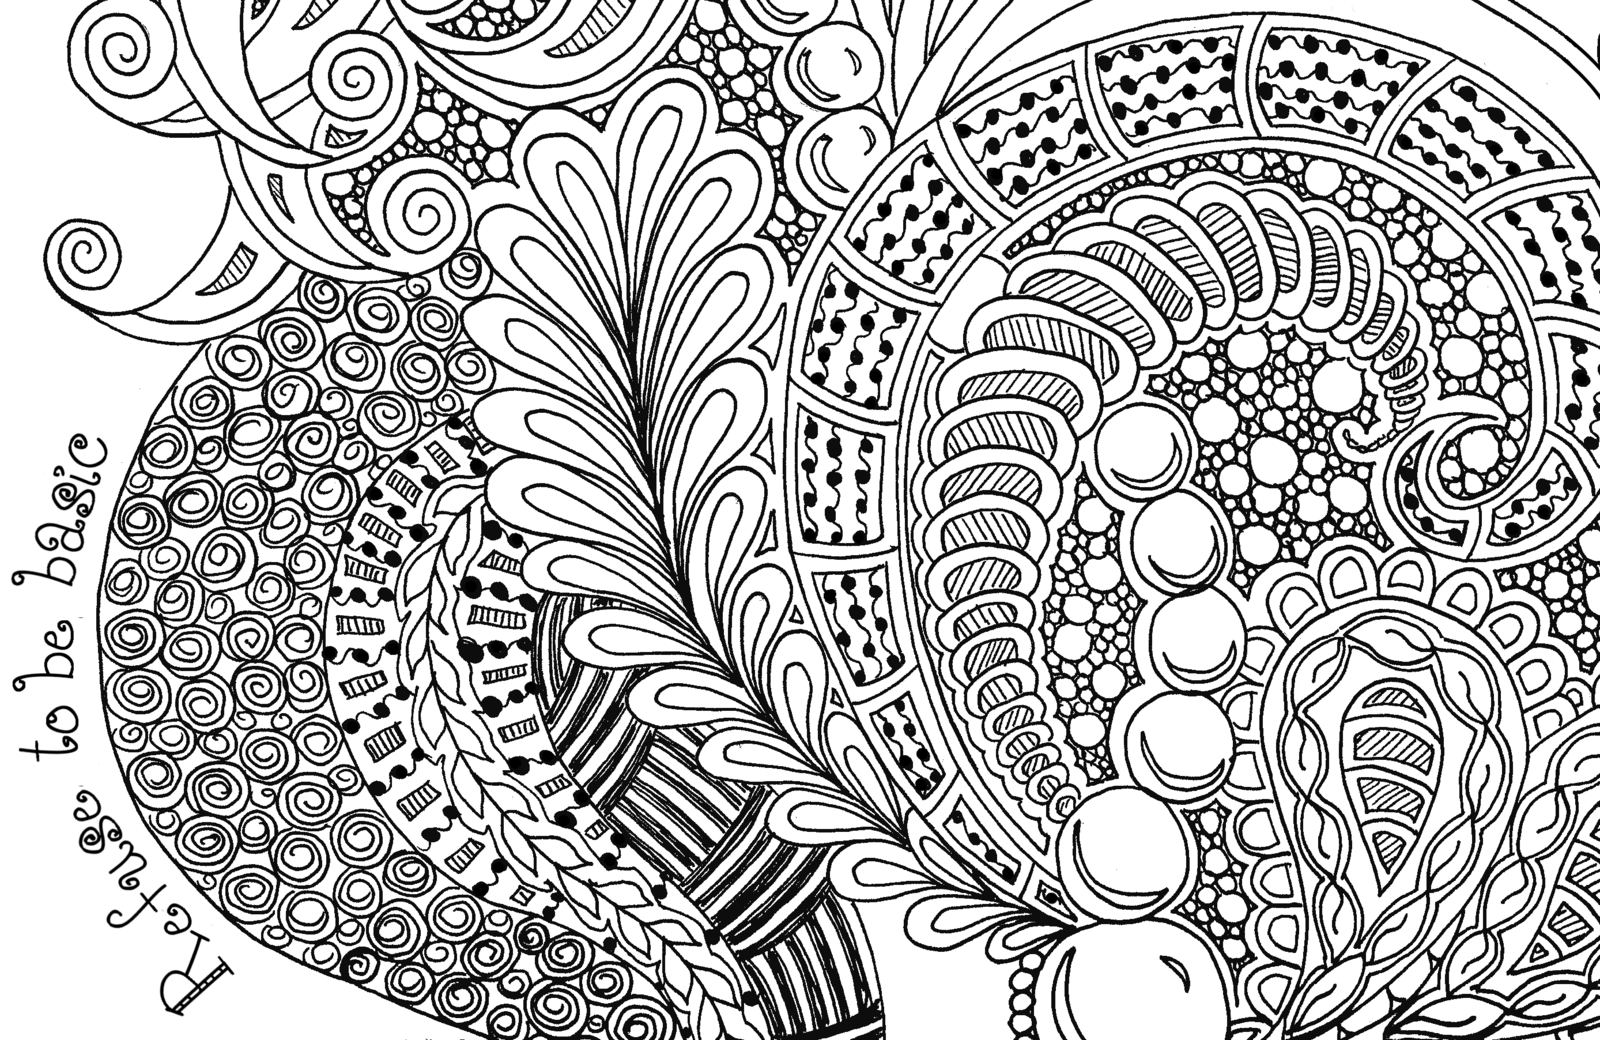 Zentangle coloring pages printable - 15 Pics Of Zentangle Birds Coloring Pages Printable Zentangle